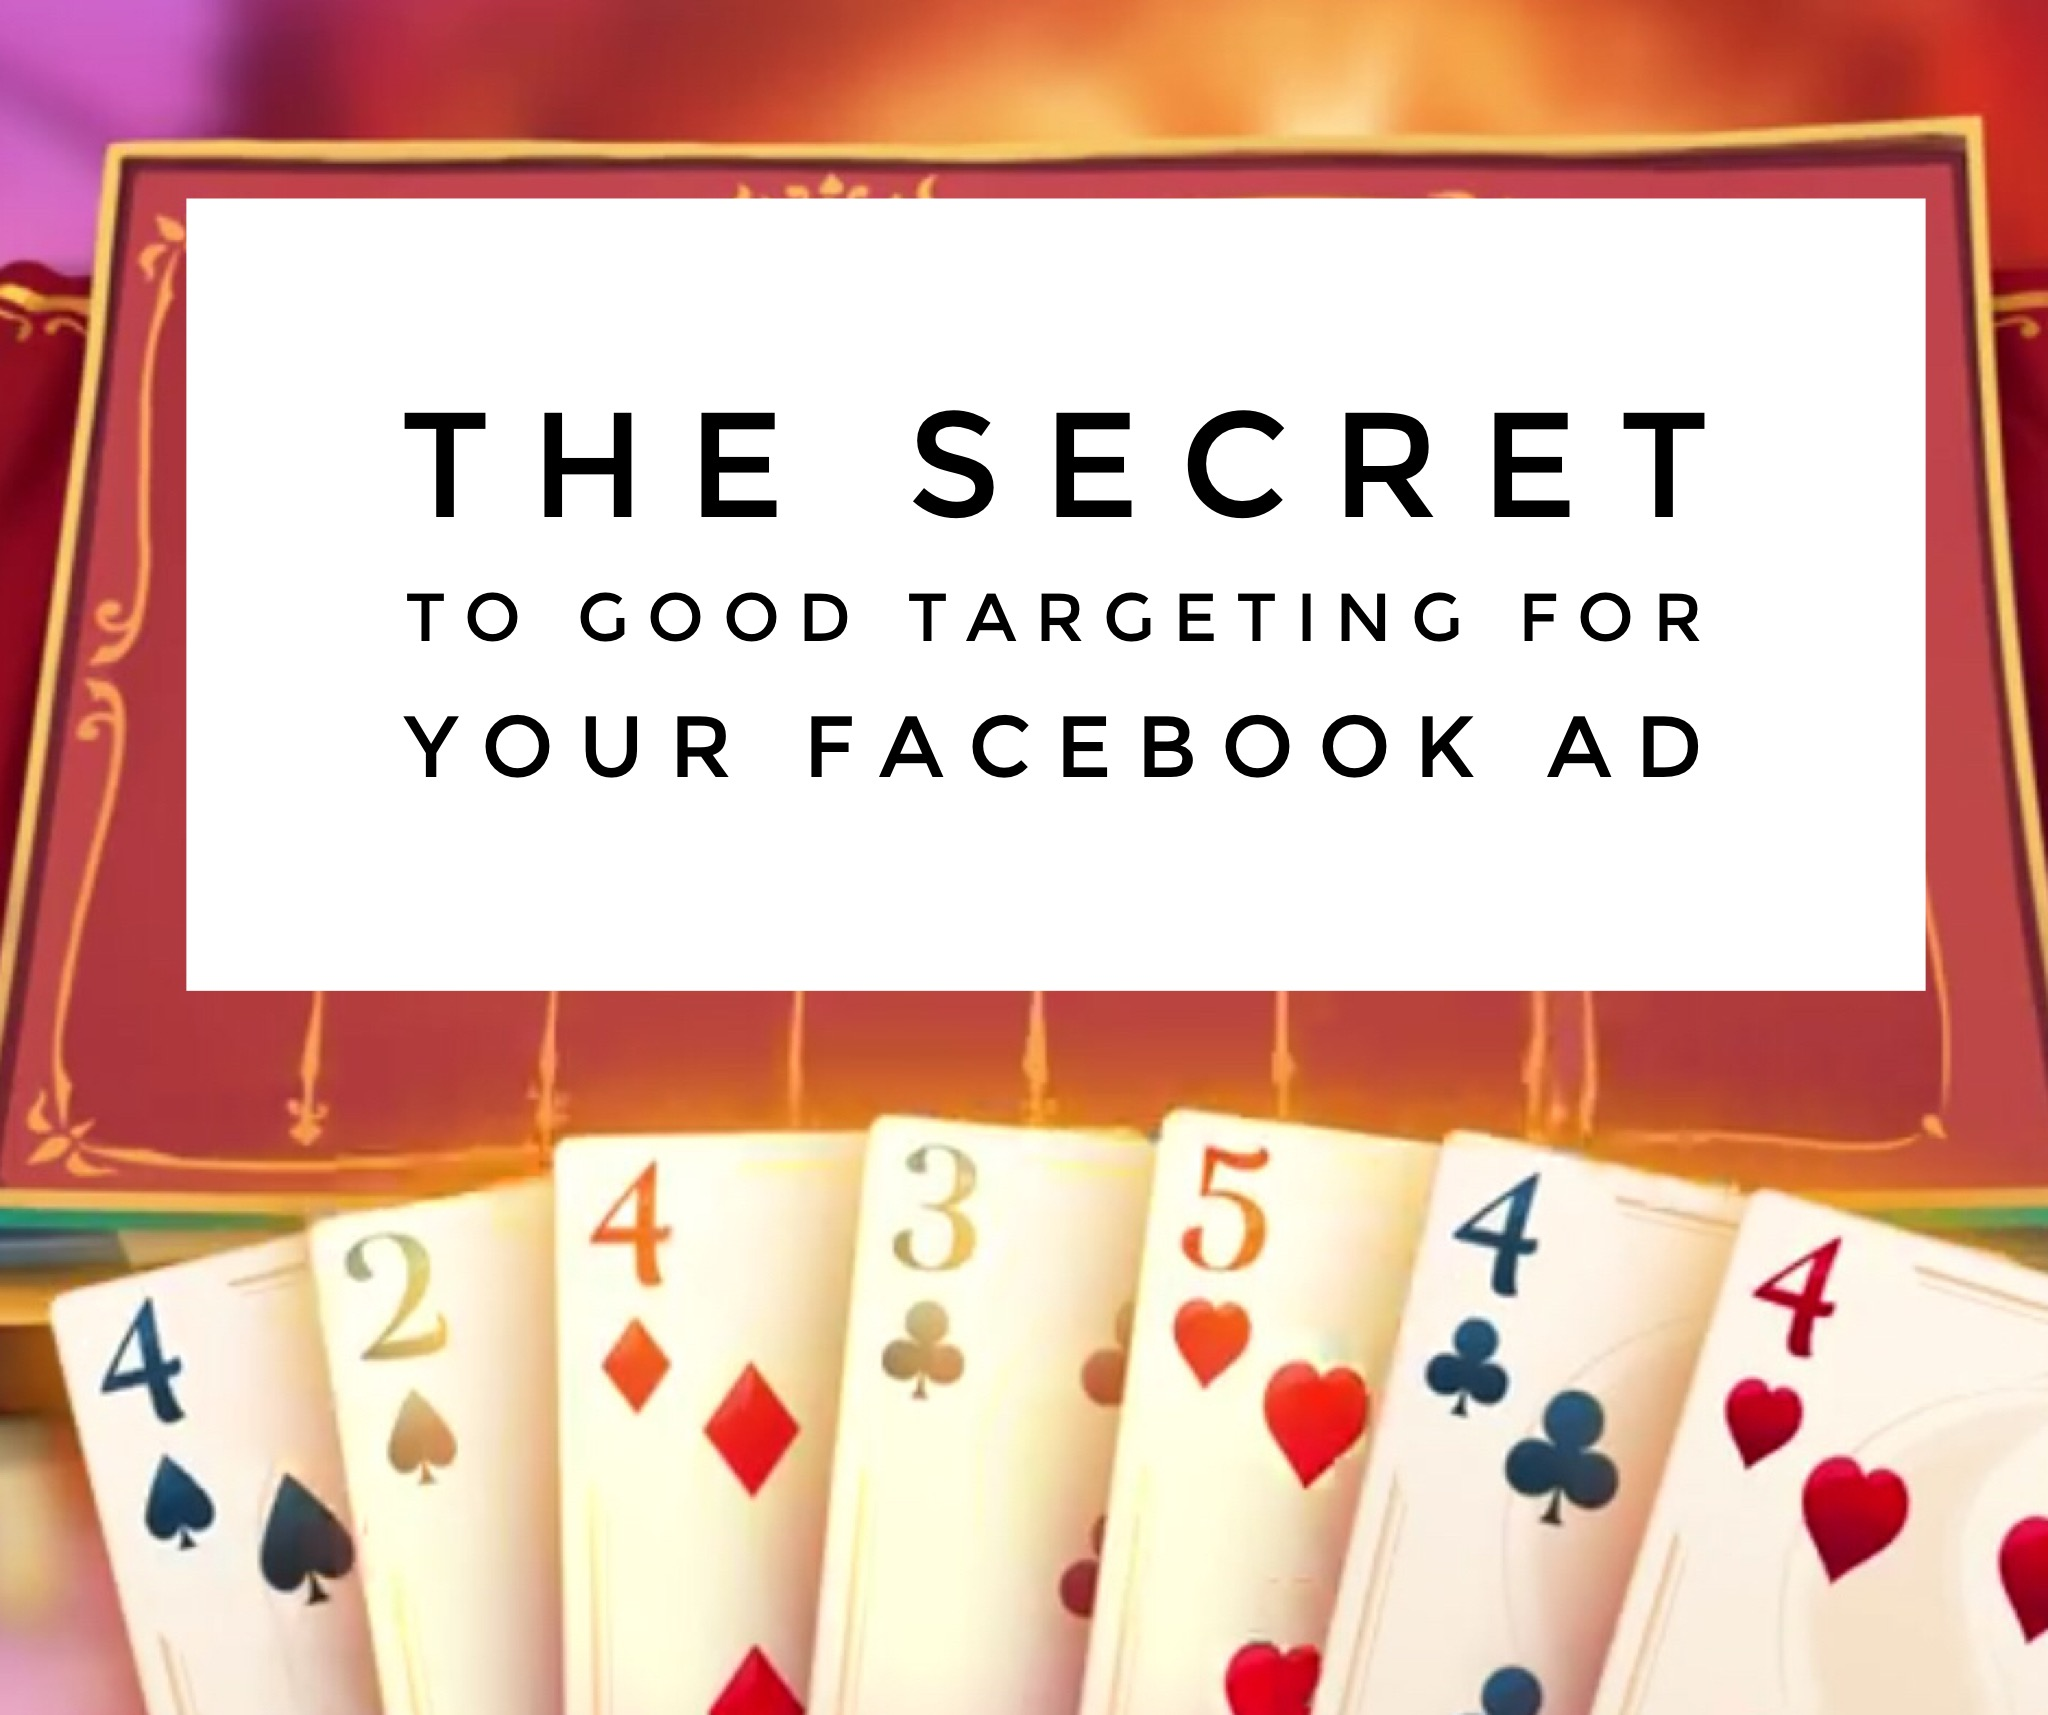 The secret to good targeting for your facebook ad